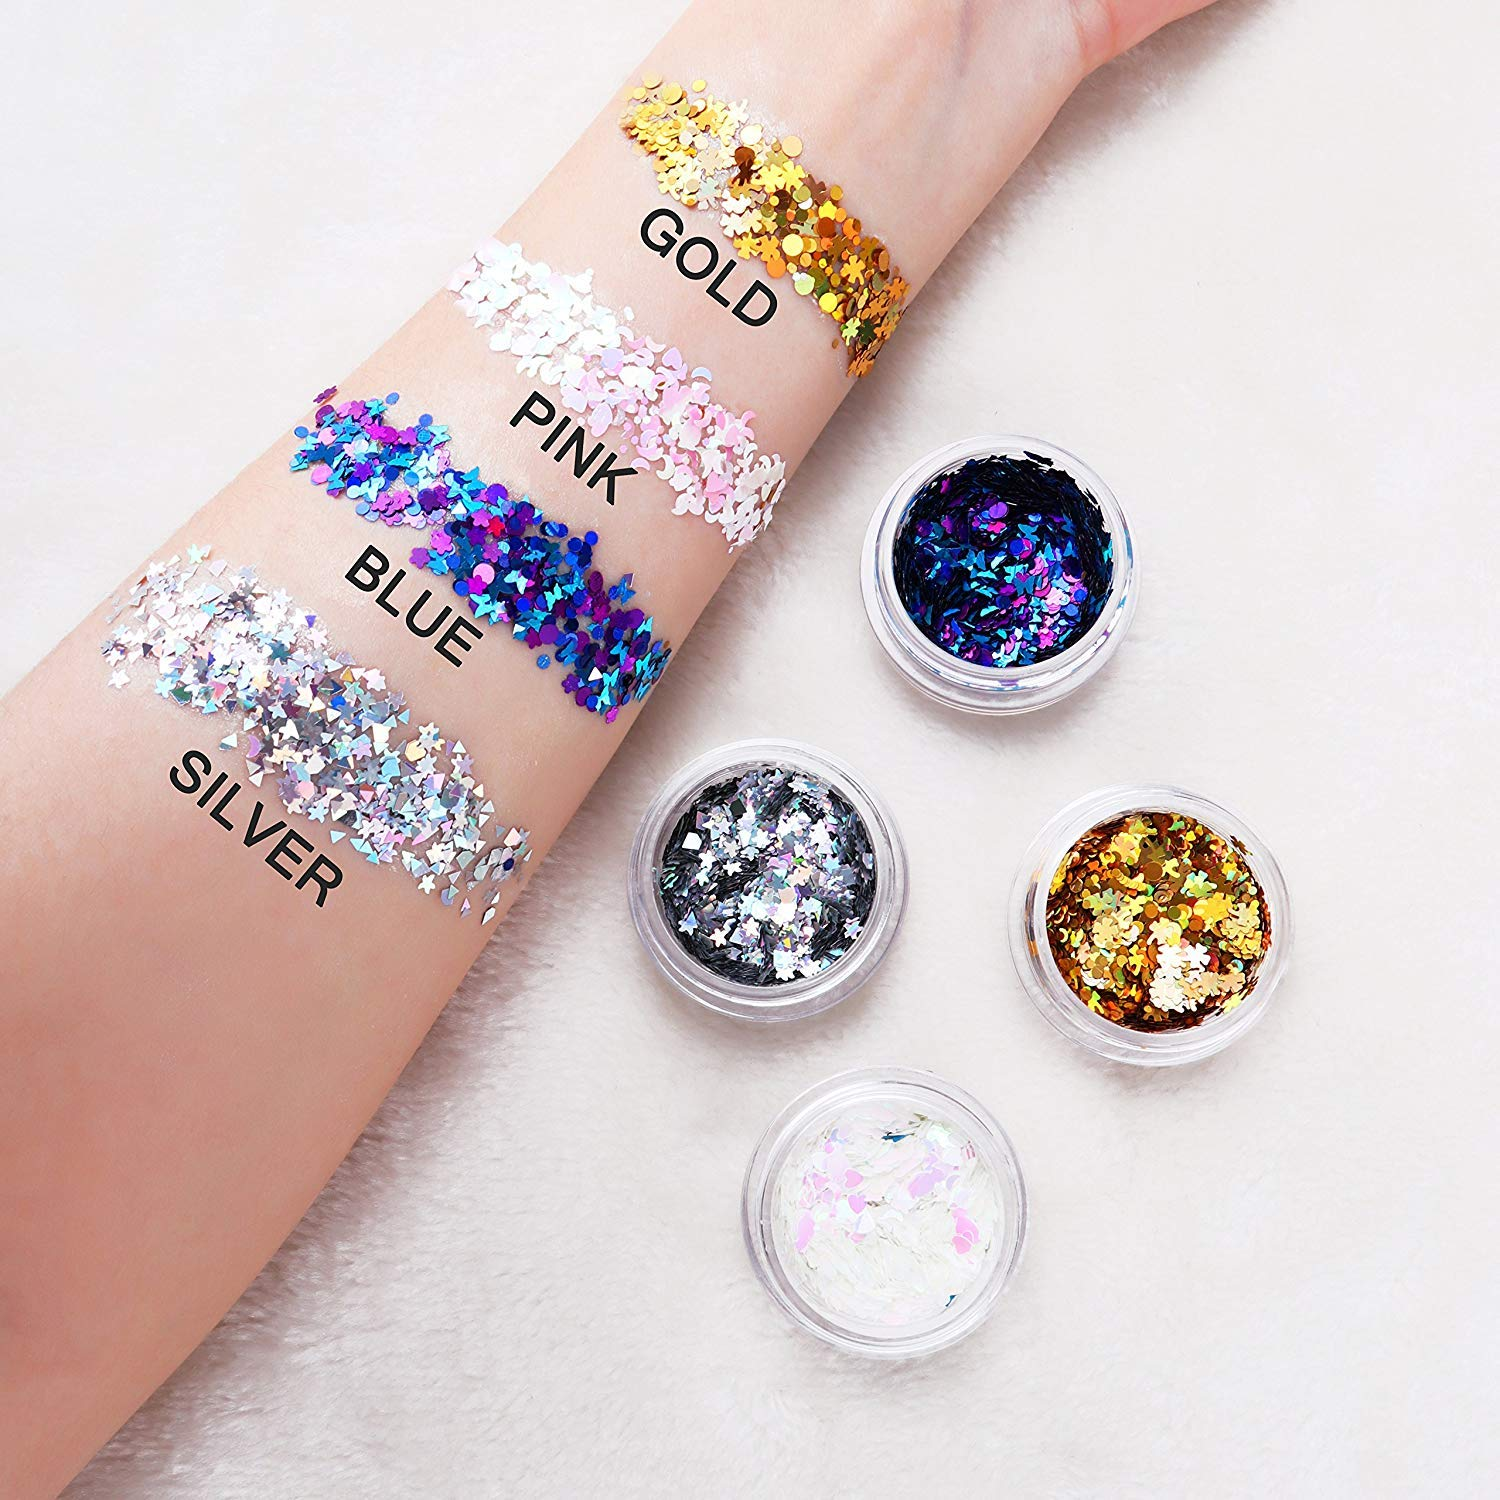 Holographic Chunky Body Glitter 4 Colors Cosmetic Glitters with 2pcs Long Lasting Fix Gel for Festival face Makeup